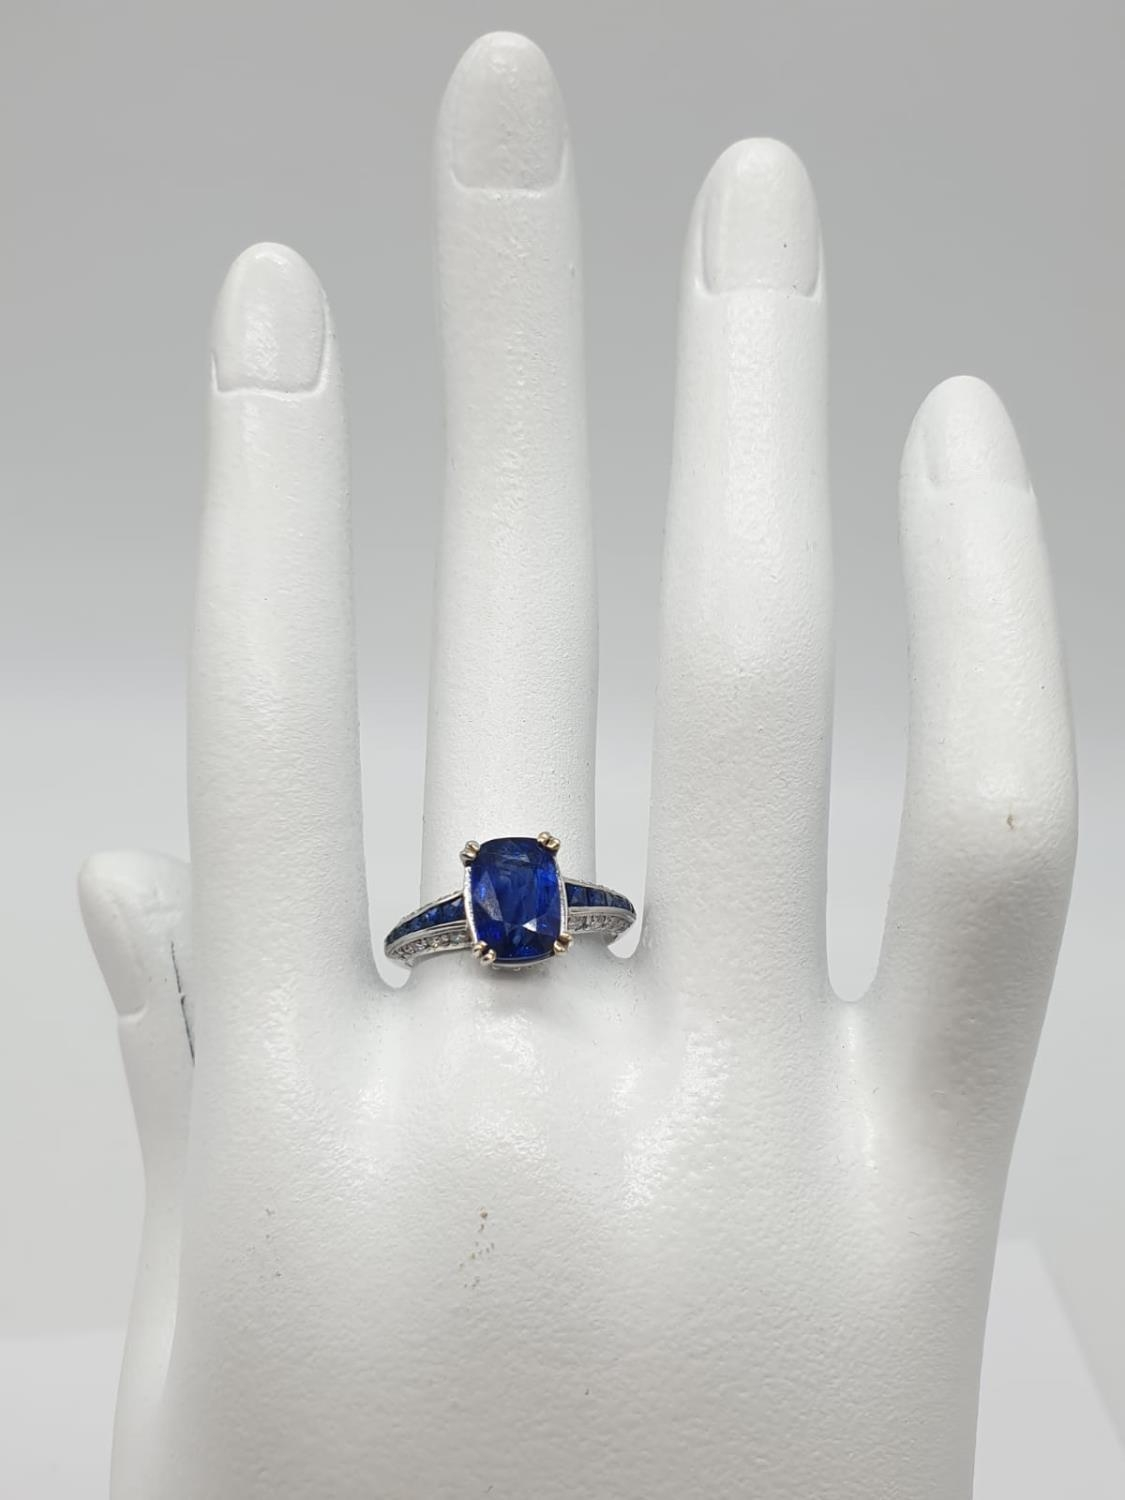 18ct White gold ring with sapphire and diamonds. Weighs 3.2g and is a size N. - Image 6 of 6